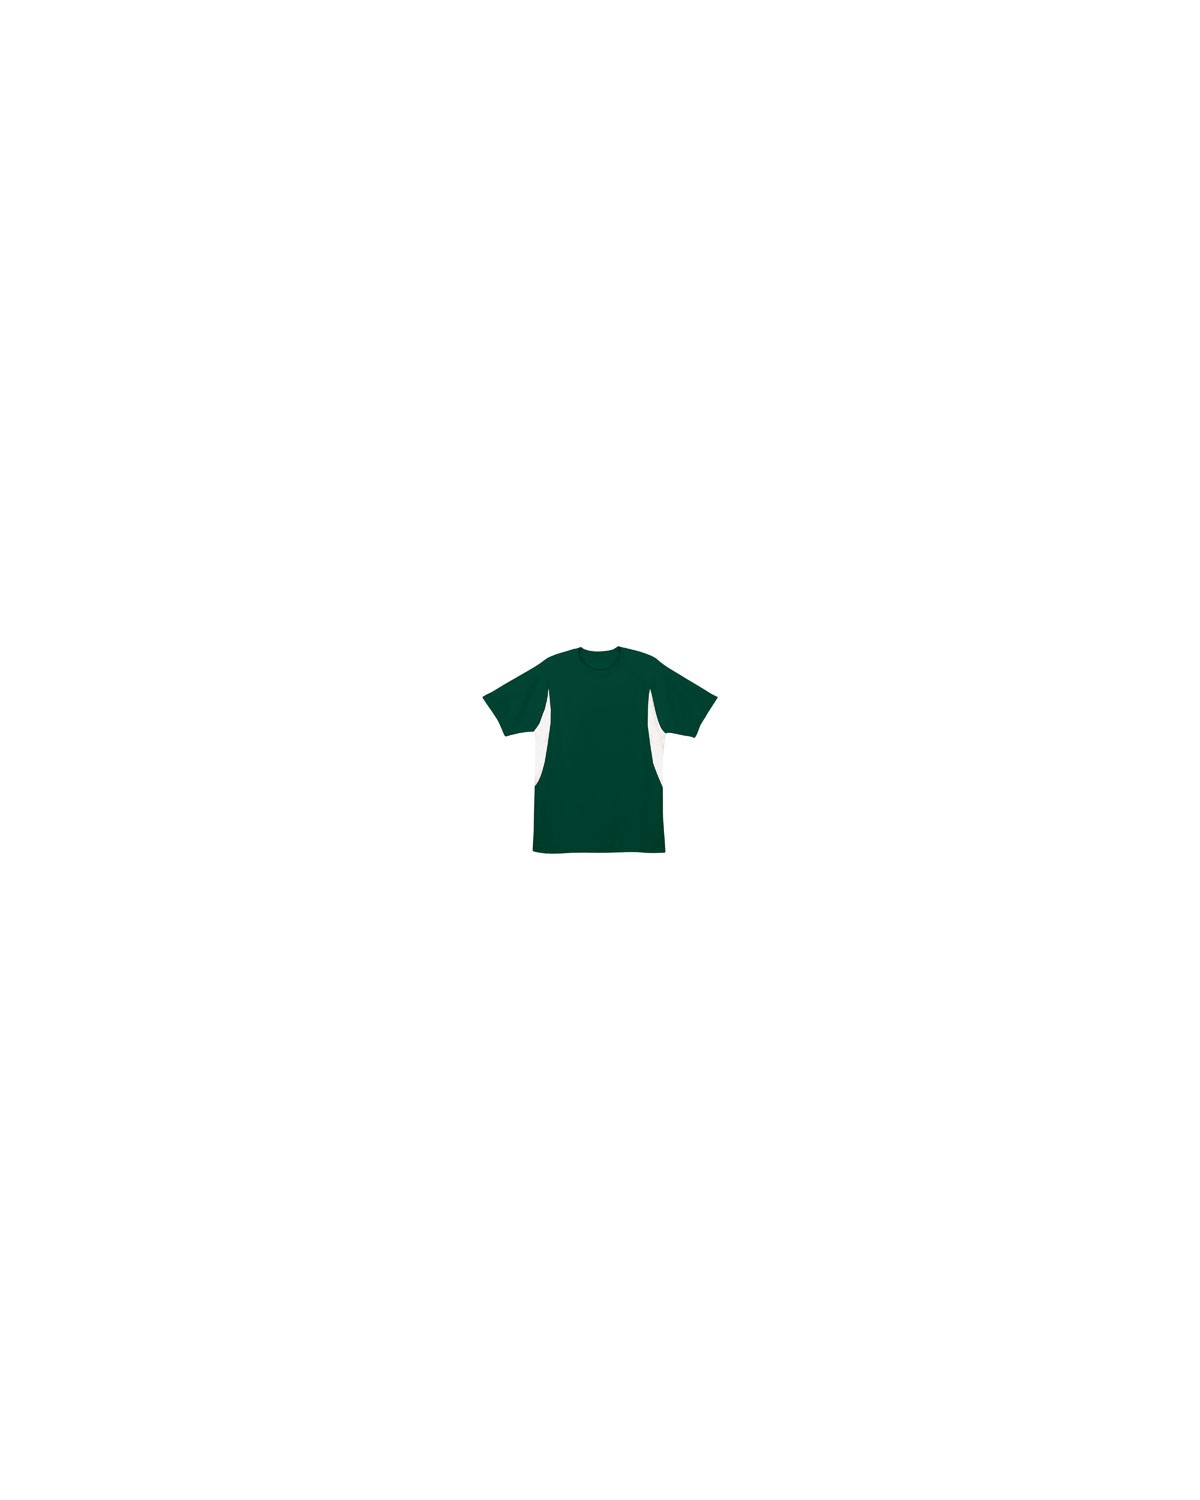 N3181 A4 Drop Ship FOREST/WHITE